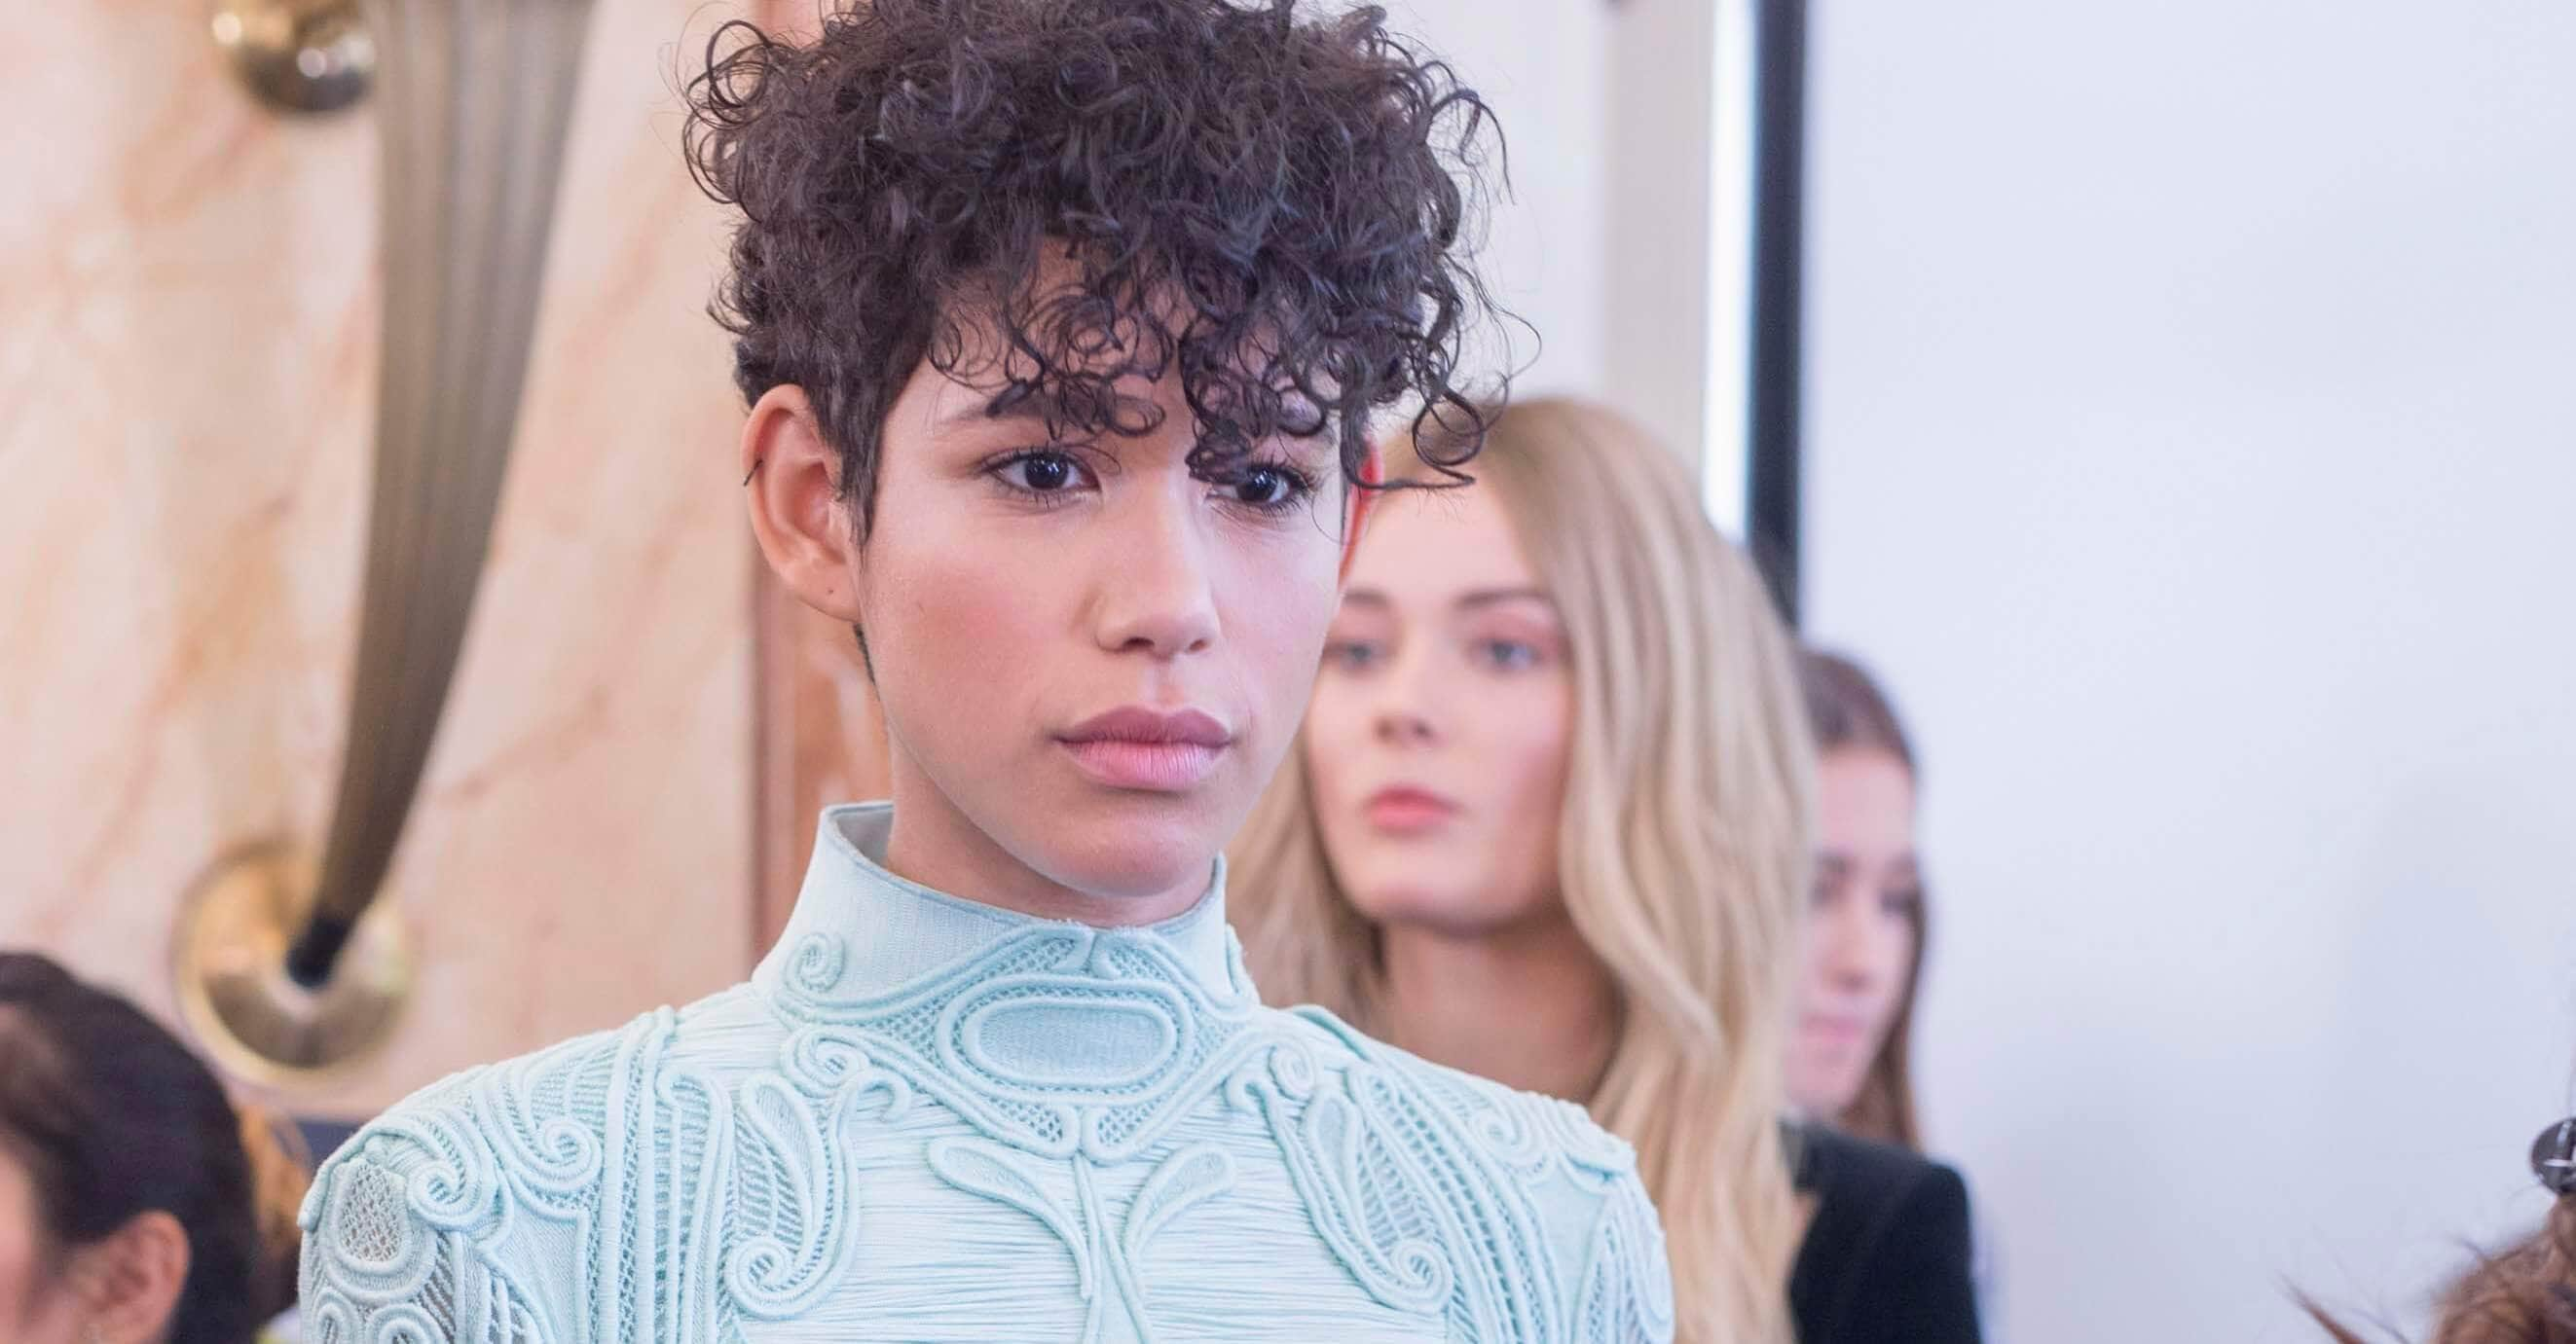 Very short haircut: Model with short curly cropped hair